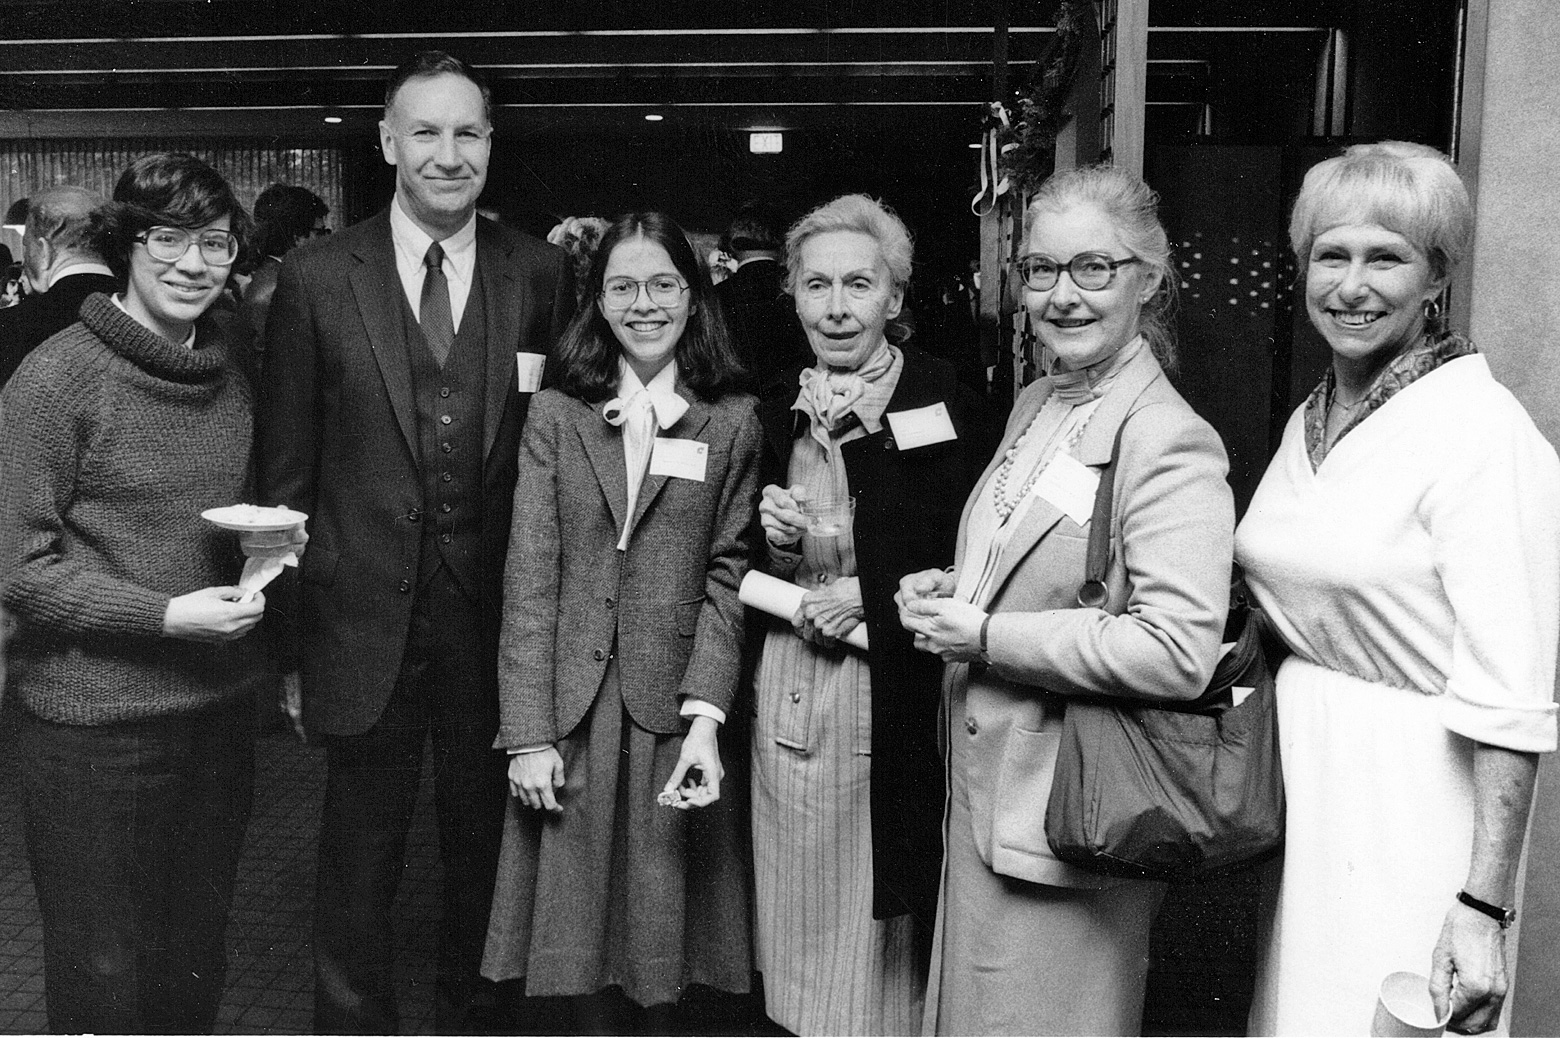 Susan with family and others at UG Reception in 1984